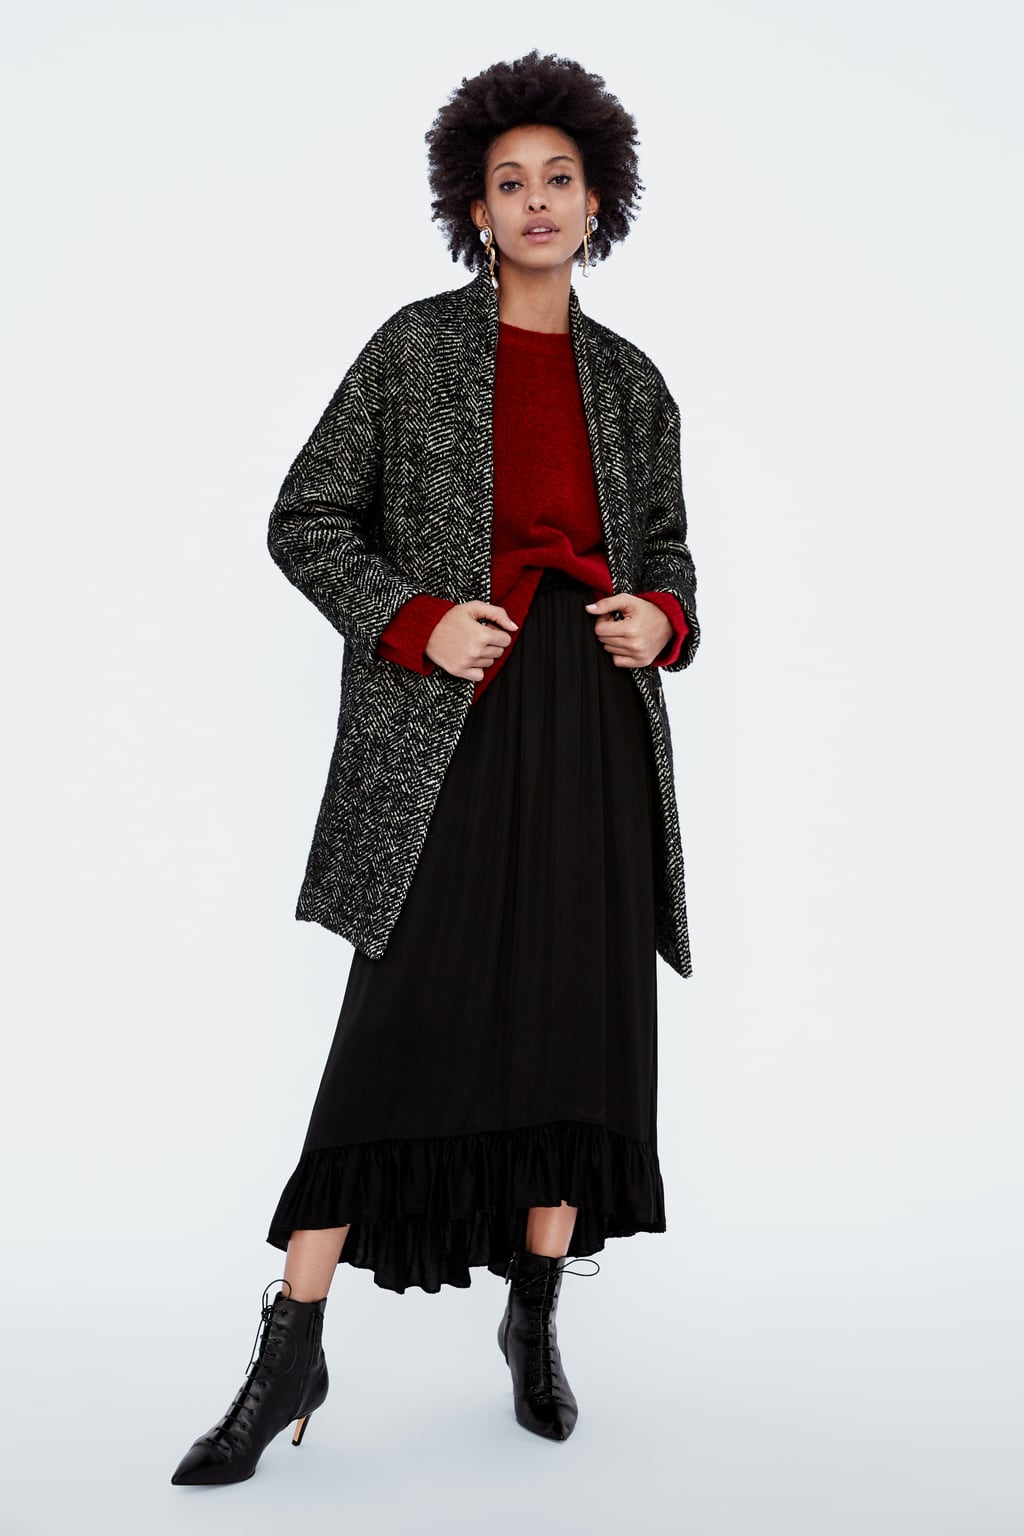 HERRINGBONE COAT. Zara. Was: $199. Now: $59.